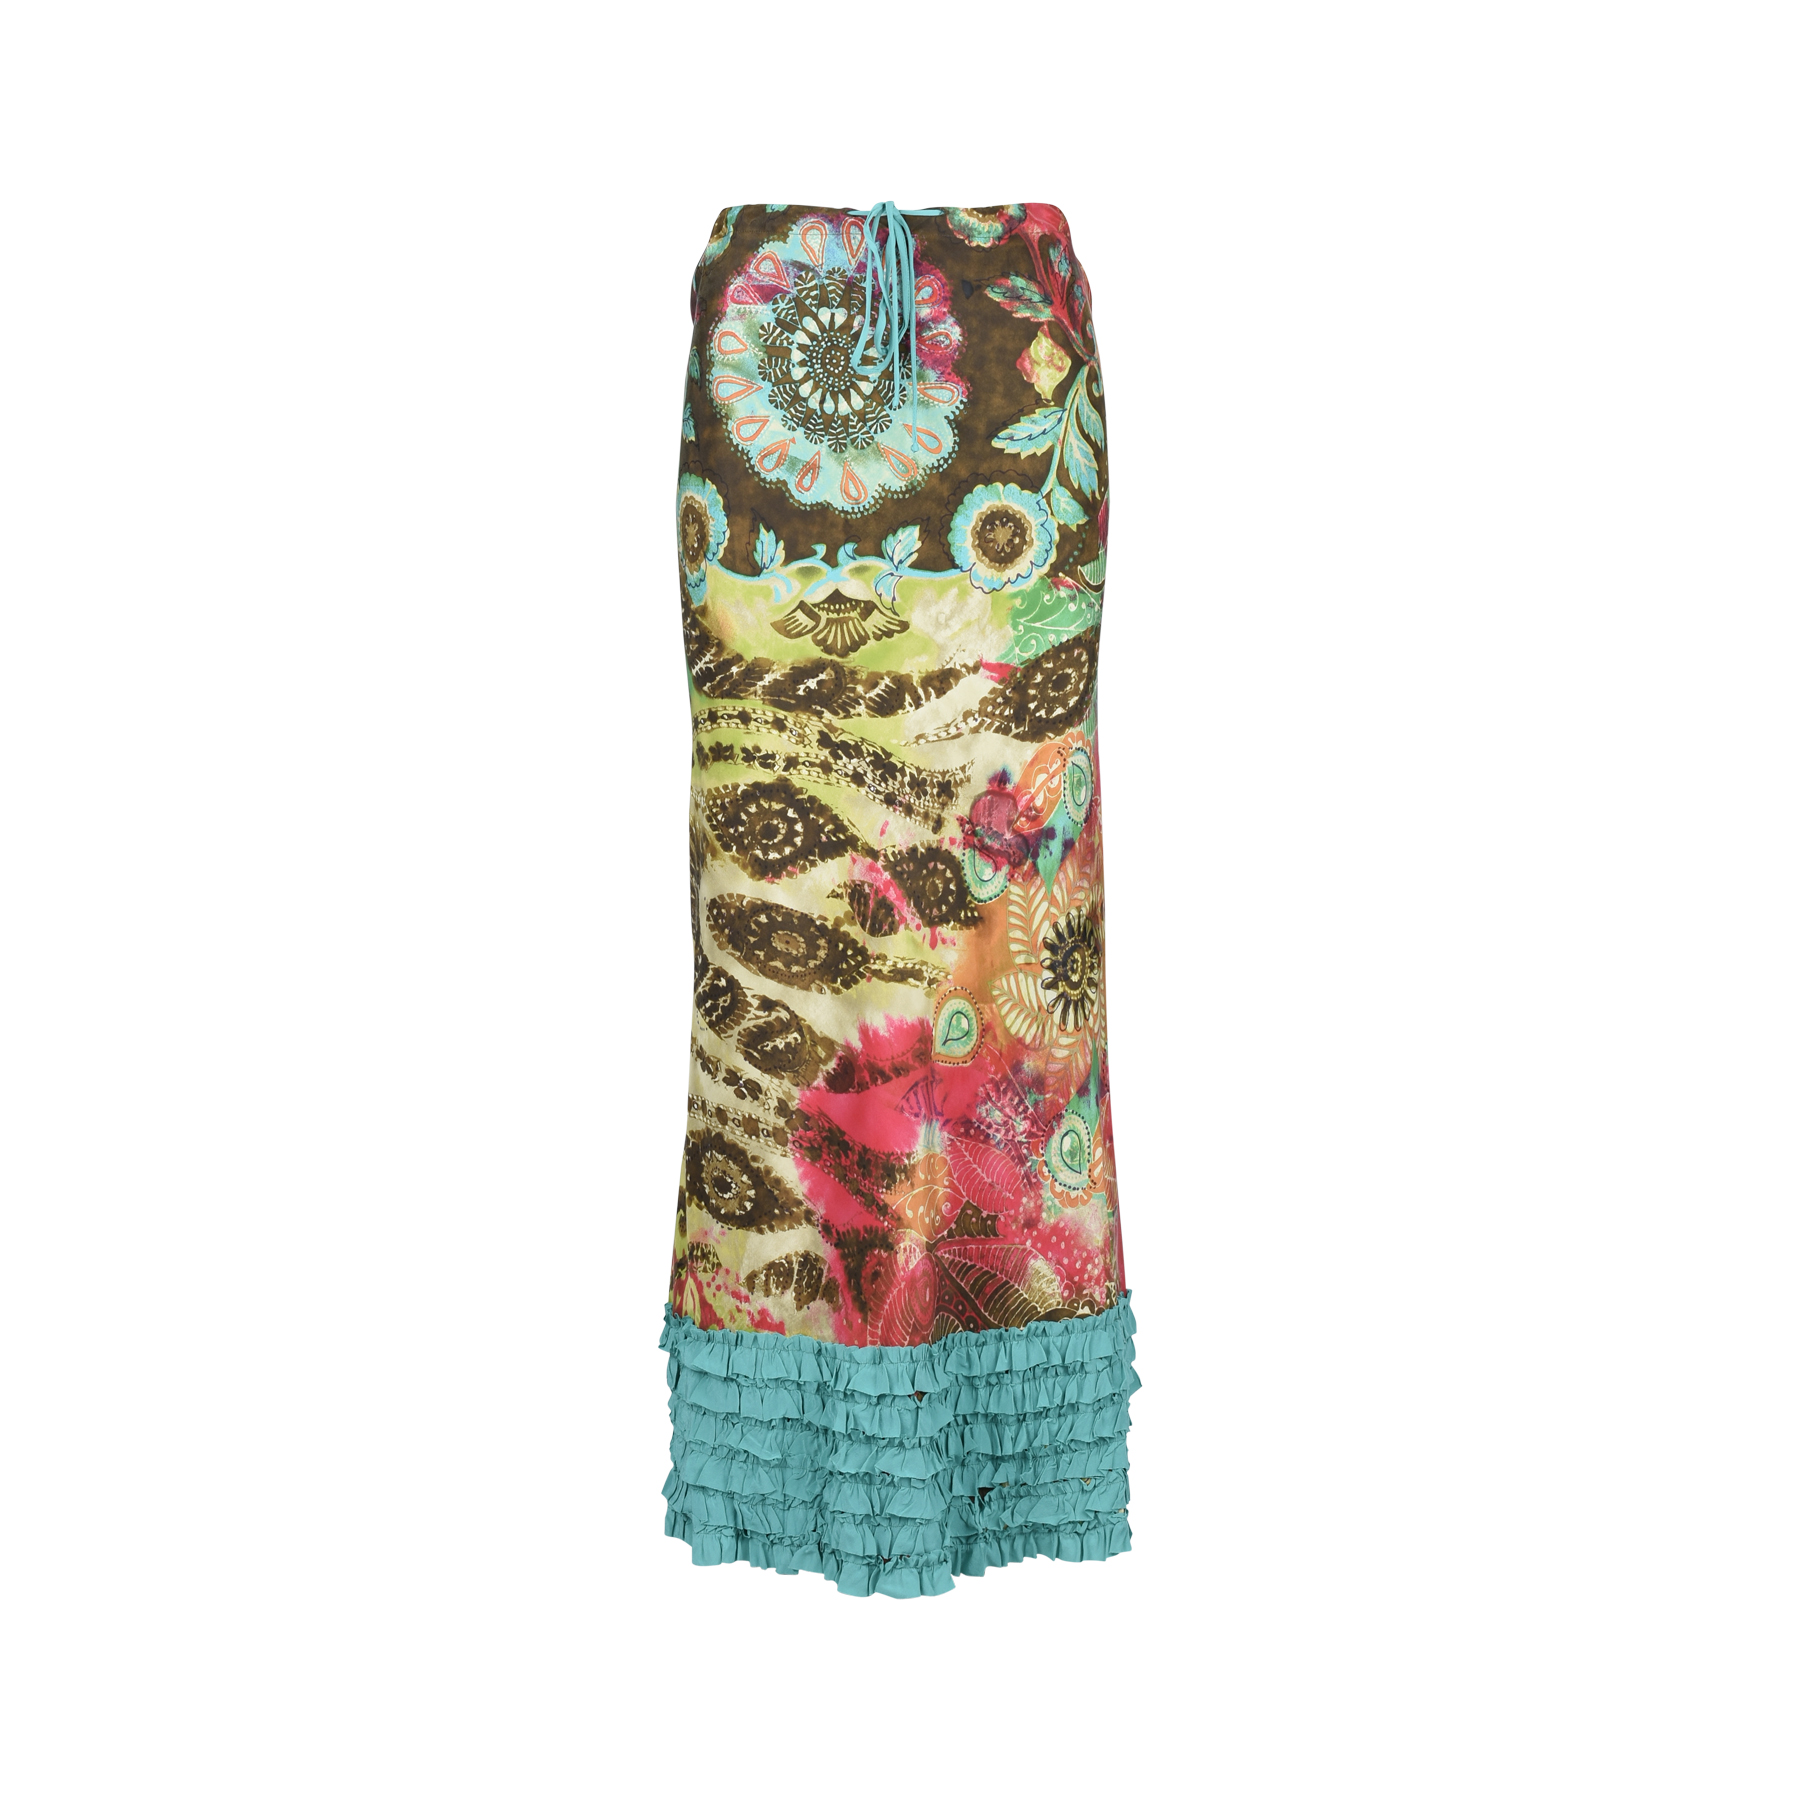 9ecf1bd24f Authentic Second Hand Etro Printed Ruffle Maxi Skirt (PSS-049-00032) - THE  FIFTH COLLECTION